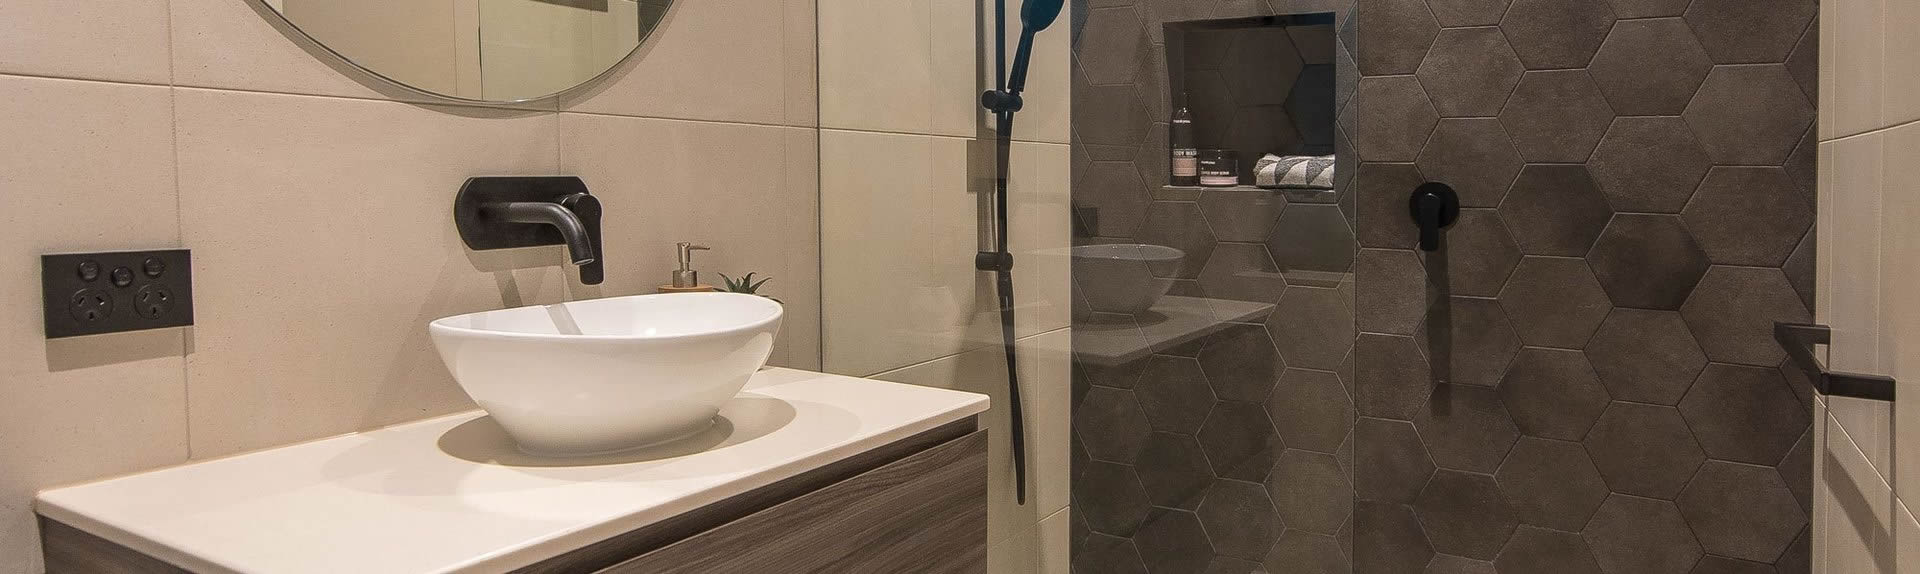 Contemporary bathroom renovation in Adelaide